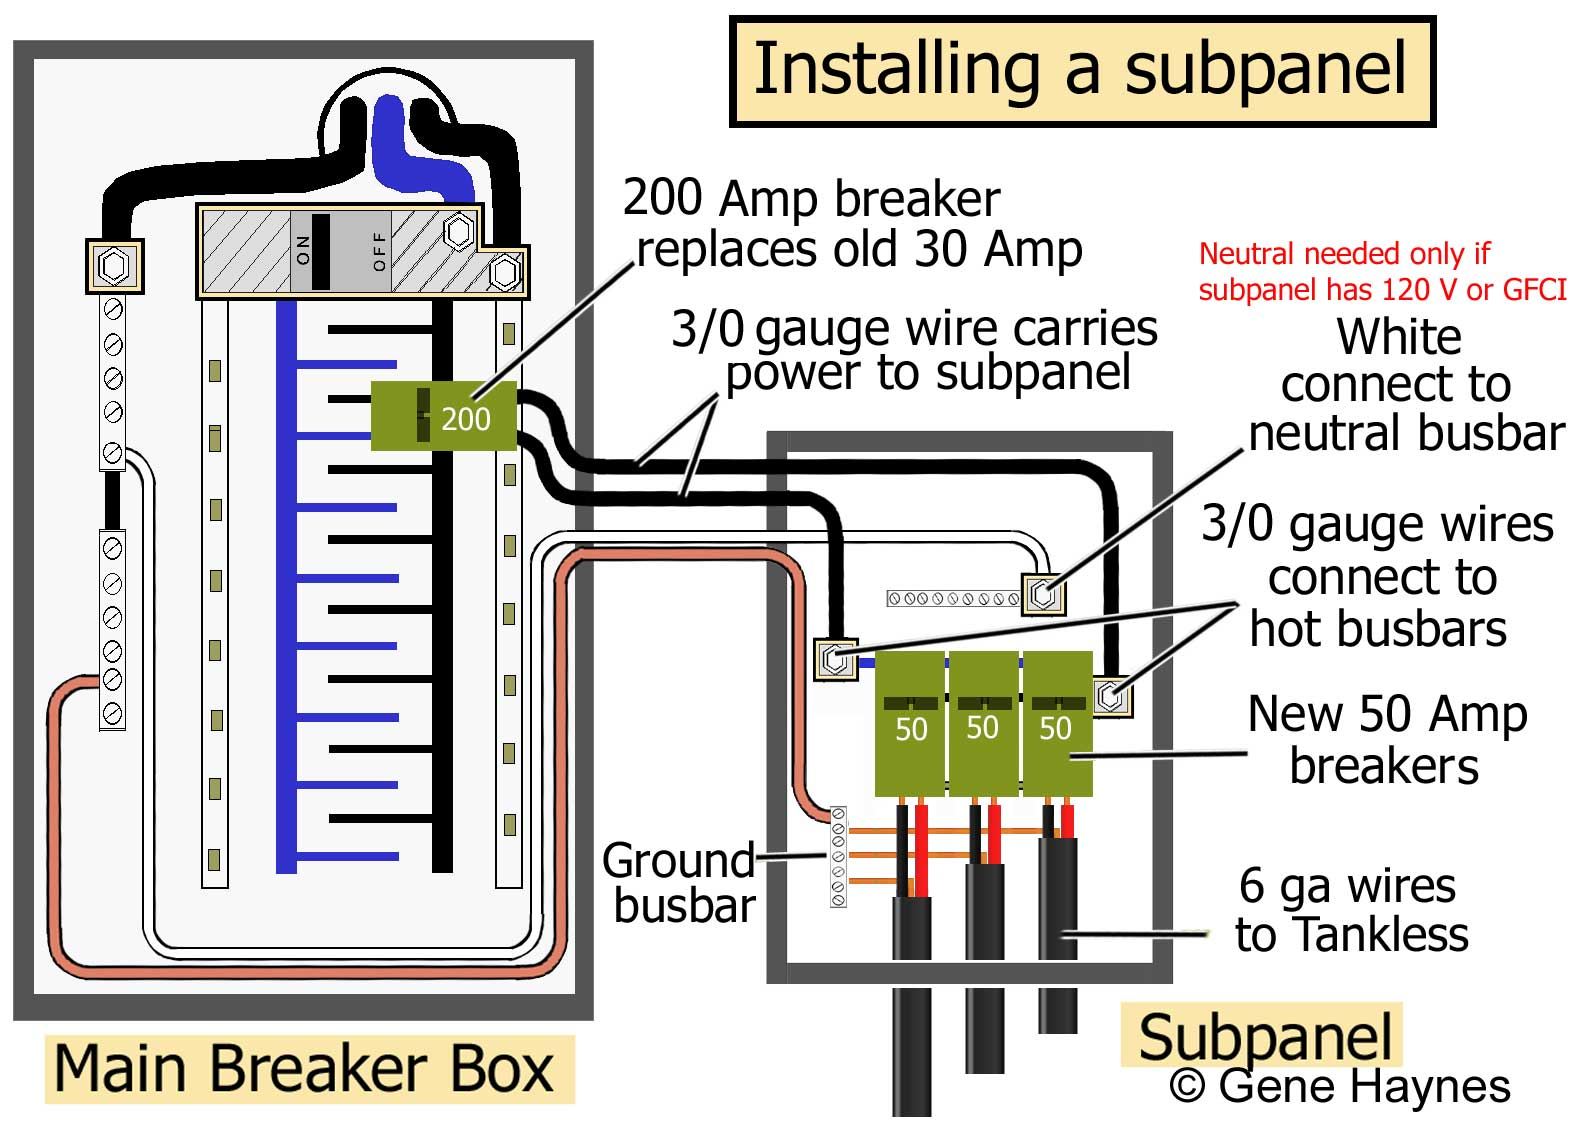 How to install a subpanel how to install main lug 150 amp breaker uses 20 wire neutral wire needed only if subpanel has 120volt breakers or gfci ground wire required for all installations greentooth Gallery